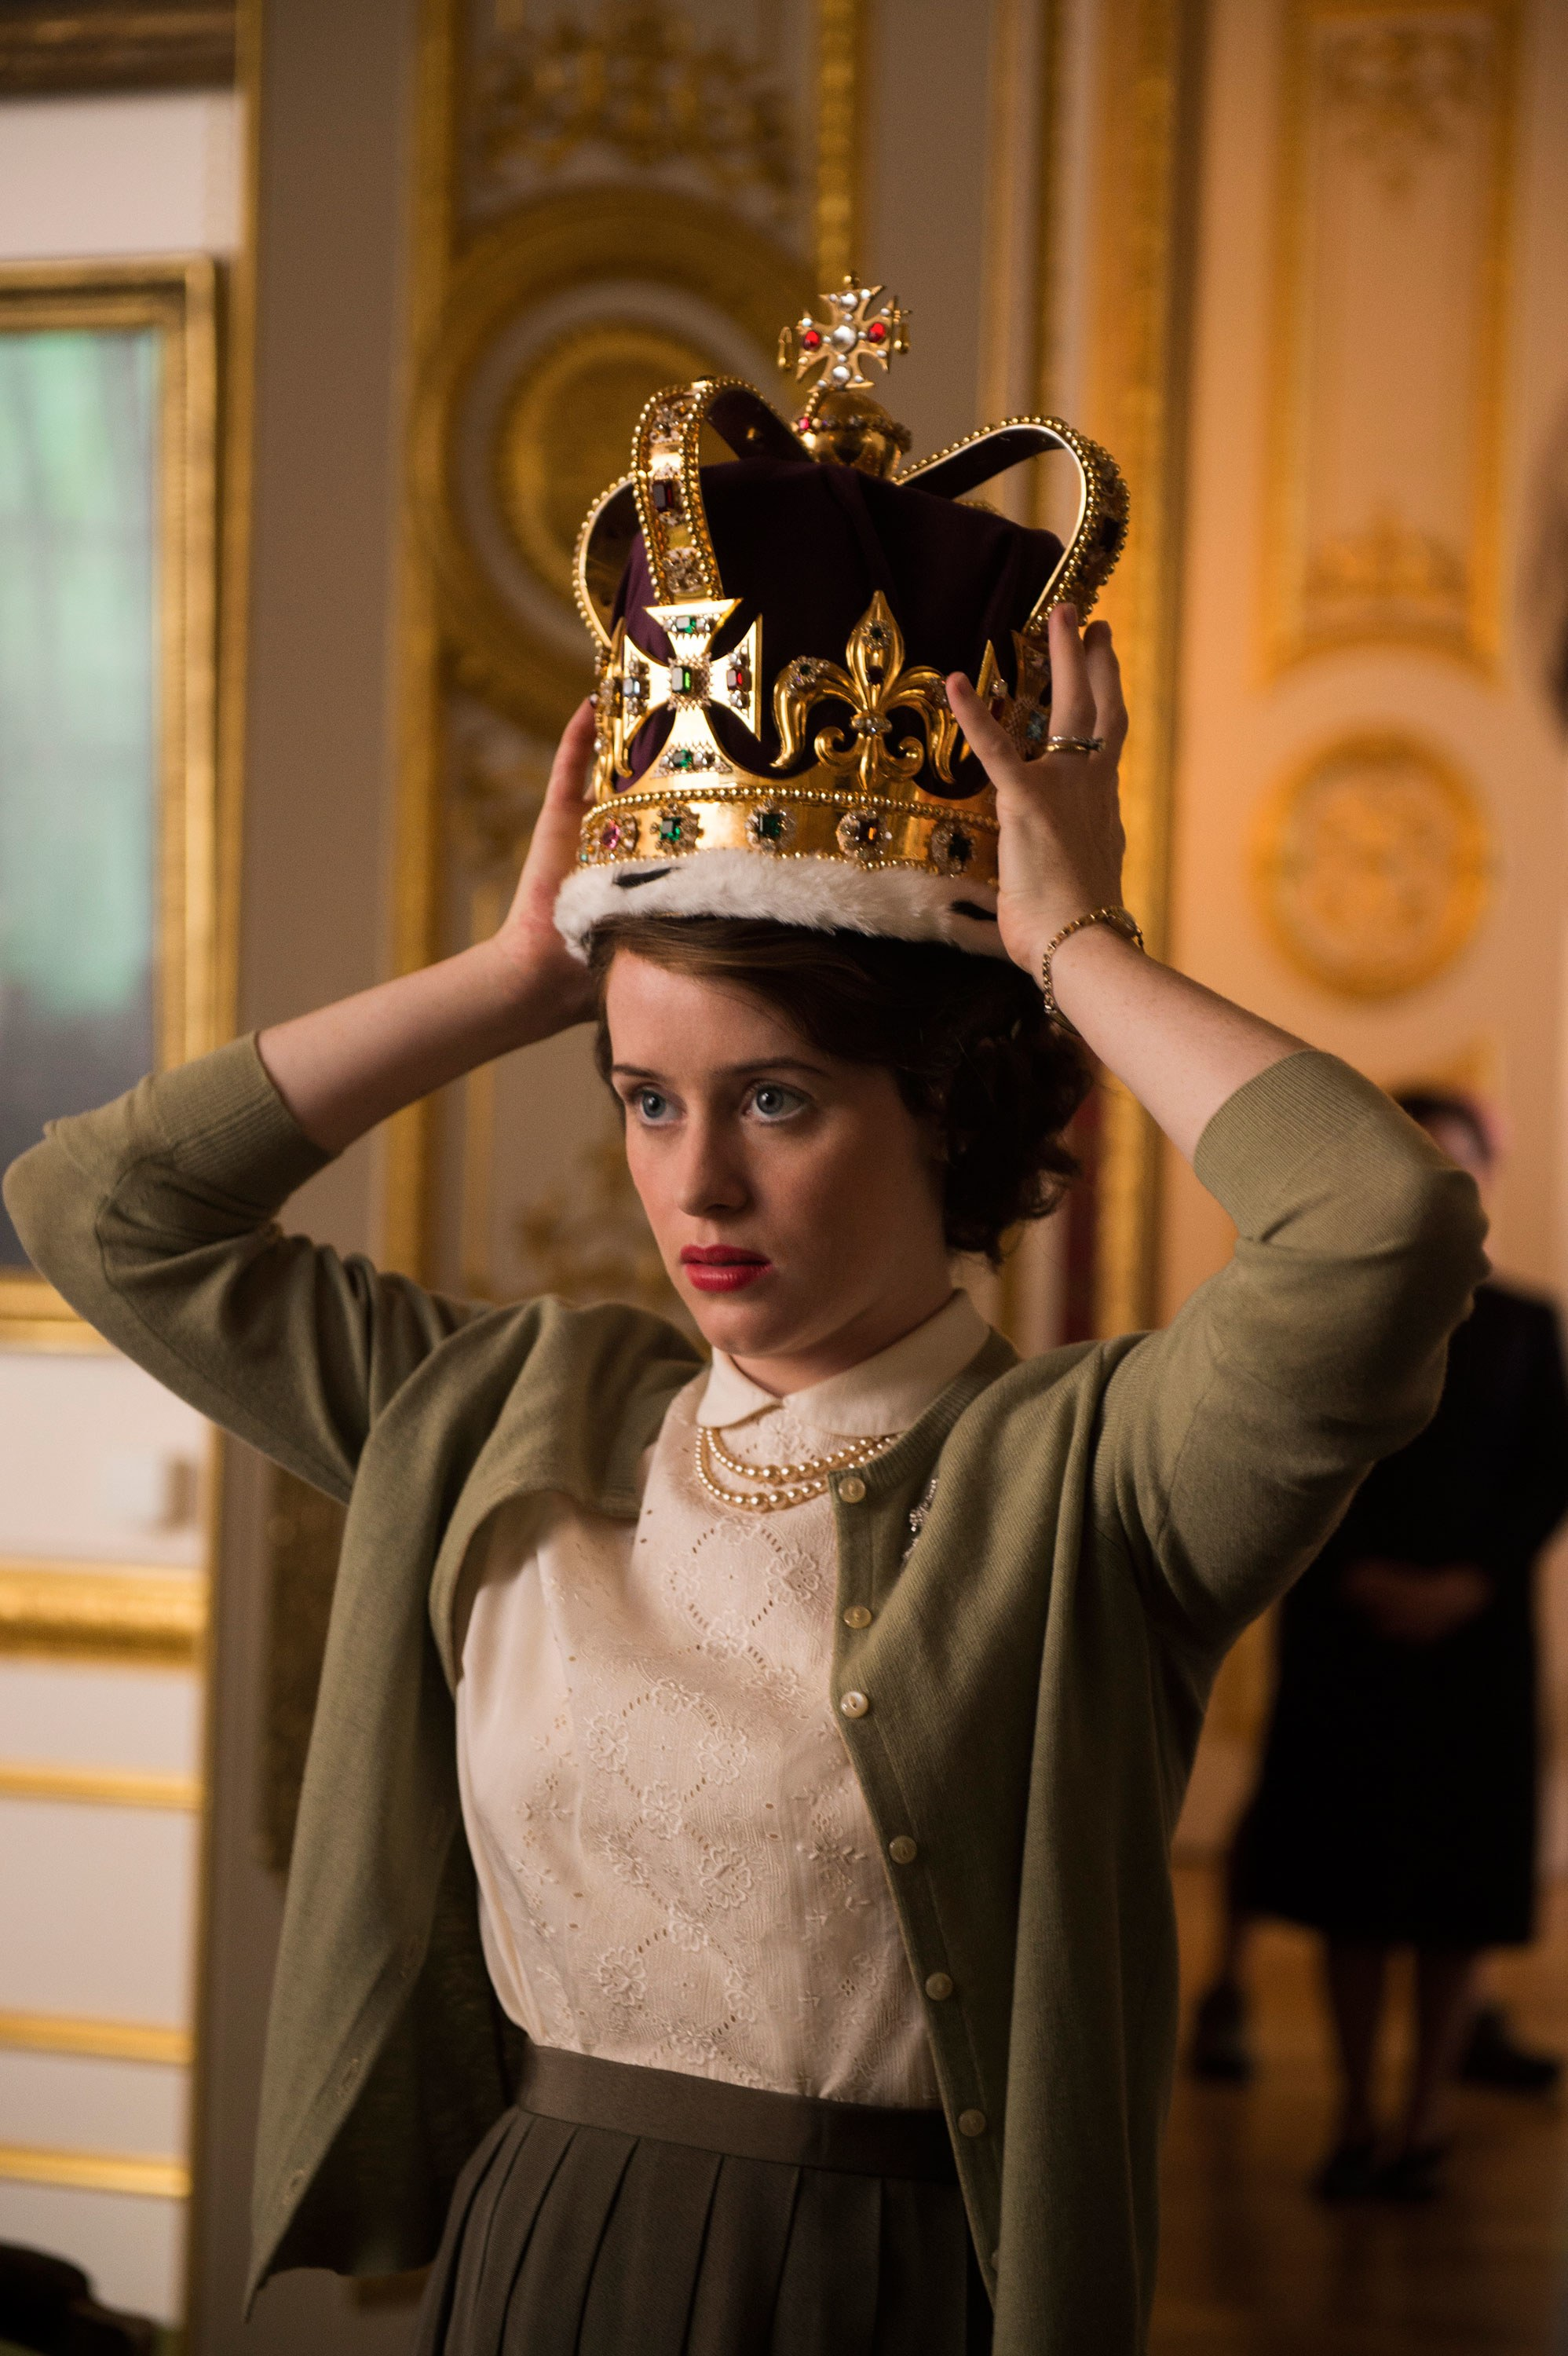 Foy as Queen Elizabeth II in The Crown.